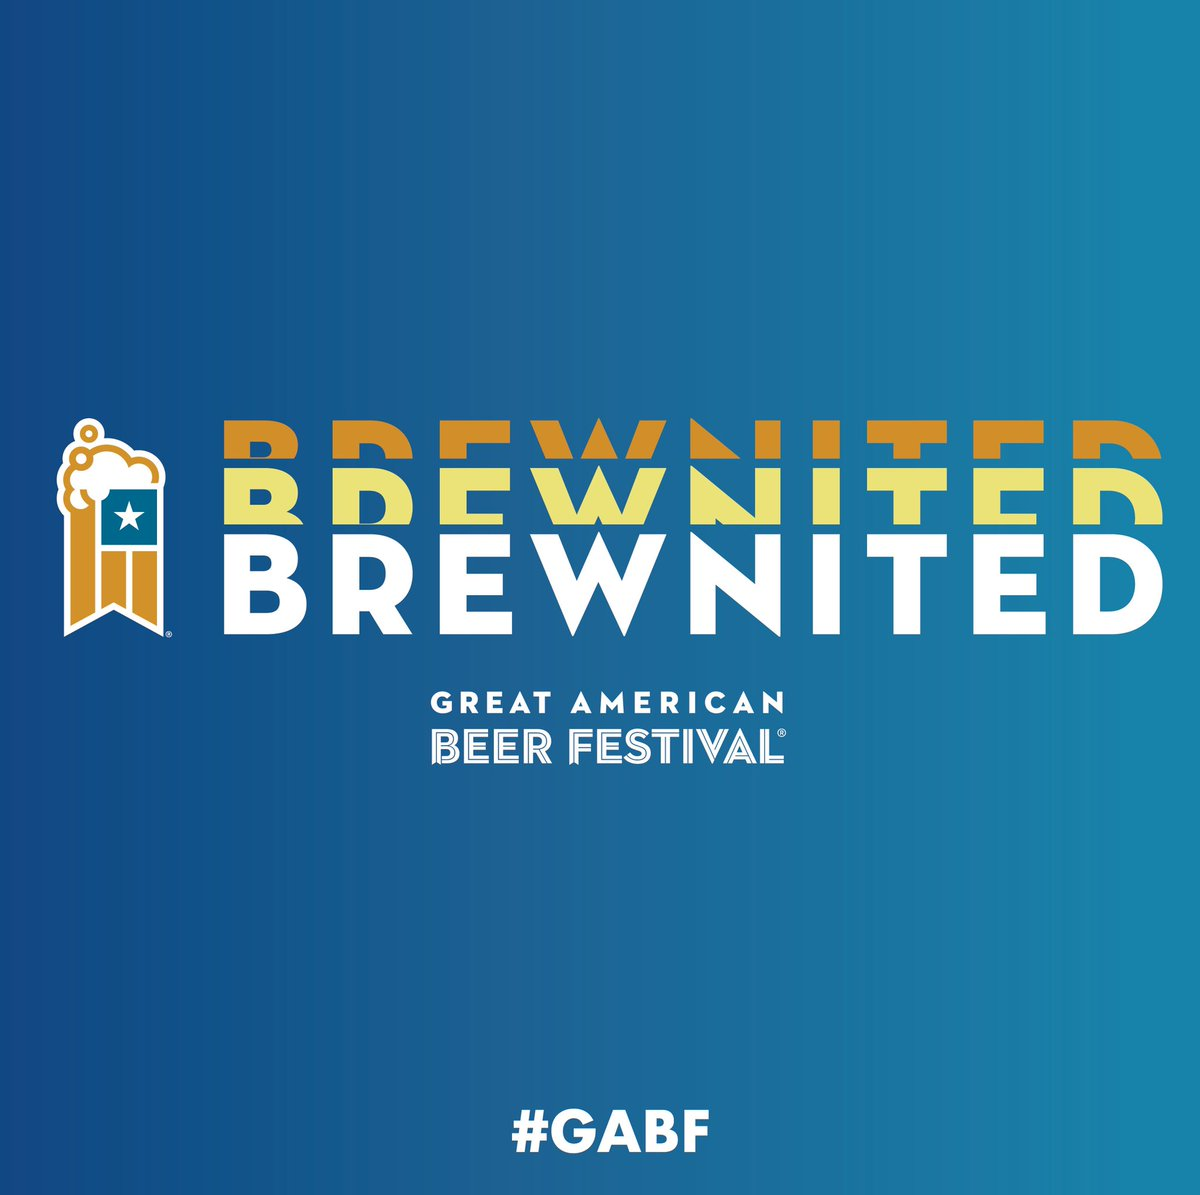 2020 can't keep @GABF down!⠀ Purchase a $20 #GABF Festival Passport to take part in this year's reimagined event. Includes access to Official Virtual Festival and cool giveaways at more than 1000 breweries. ⠀ https://t.co/P2LXyV7nGN ⠀ #brewnited #builttobrew https://t.co/EGZPx1KJjK